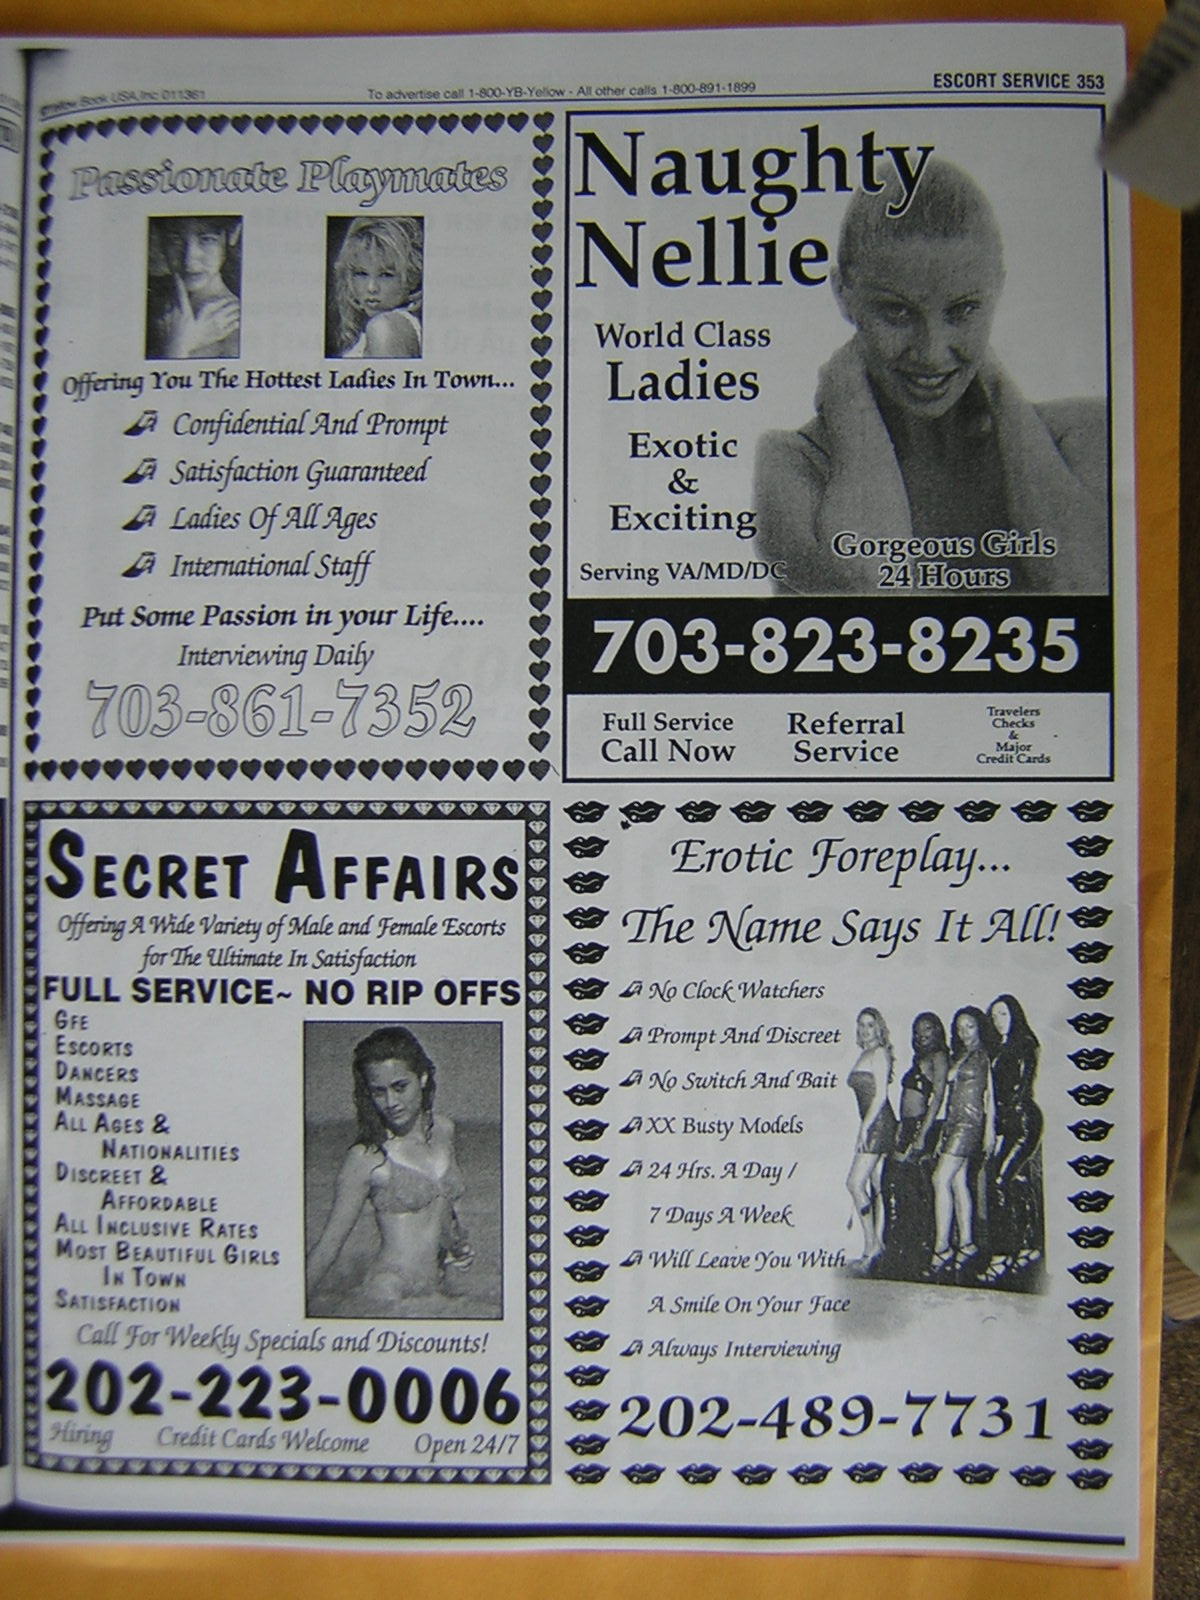 One Can Count 16 Escort Businesses That Begin With The Letter E Alone In The Accompanying Listings